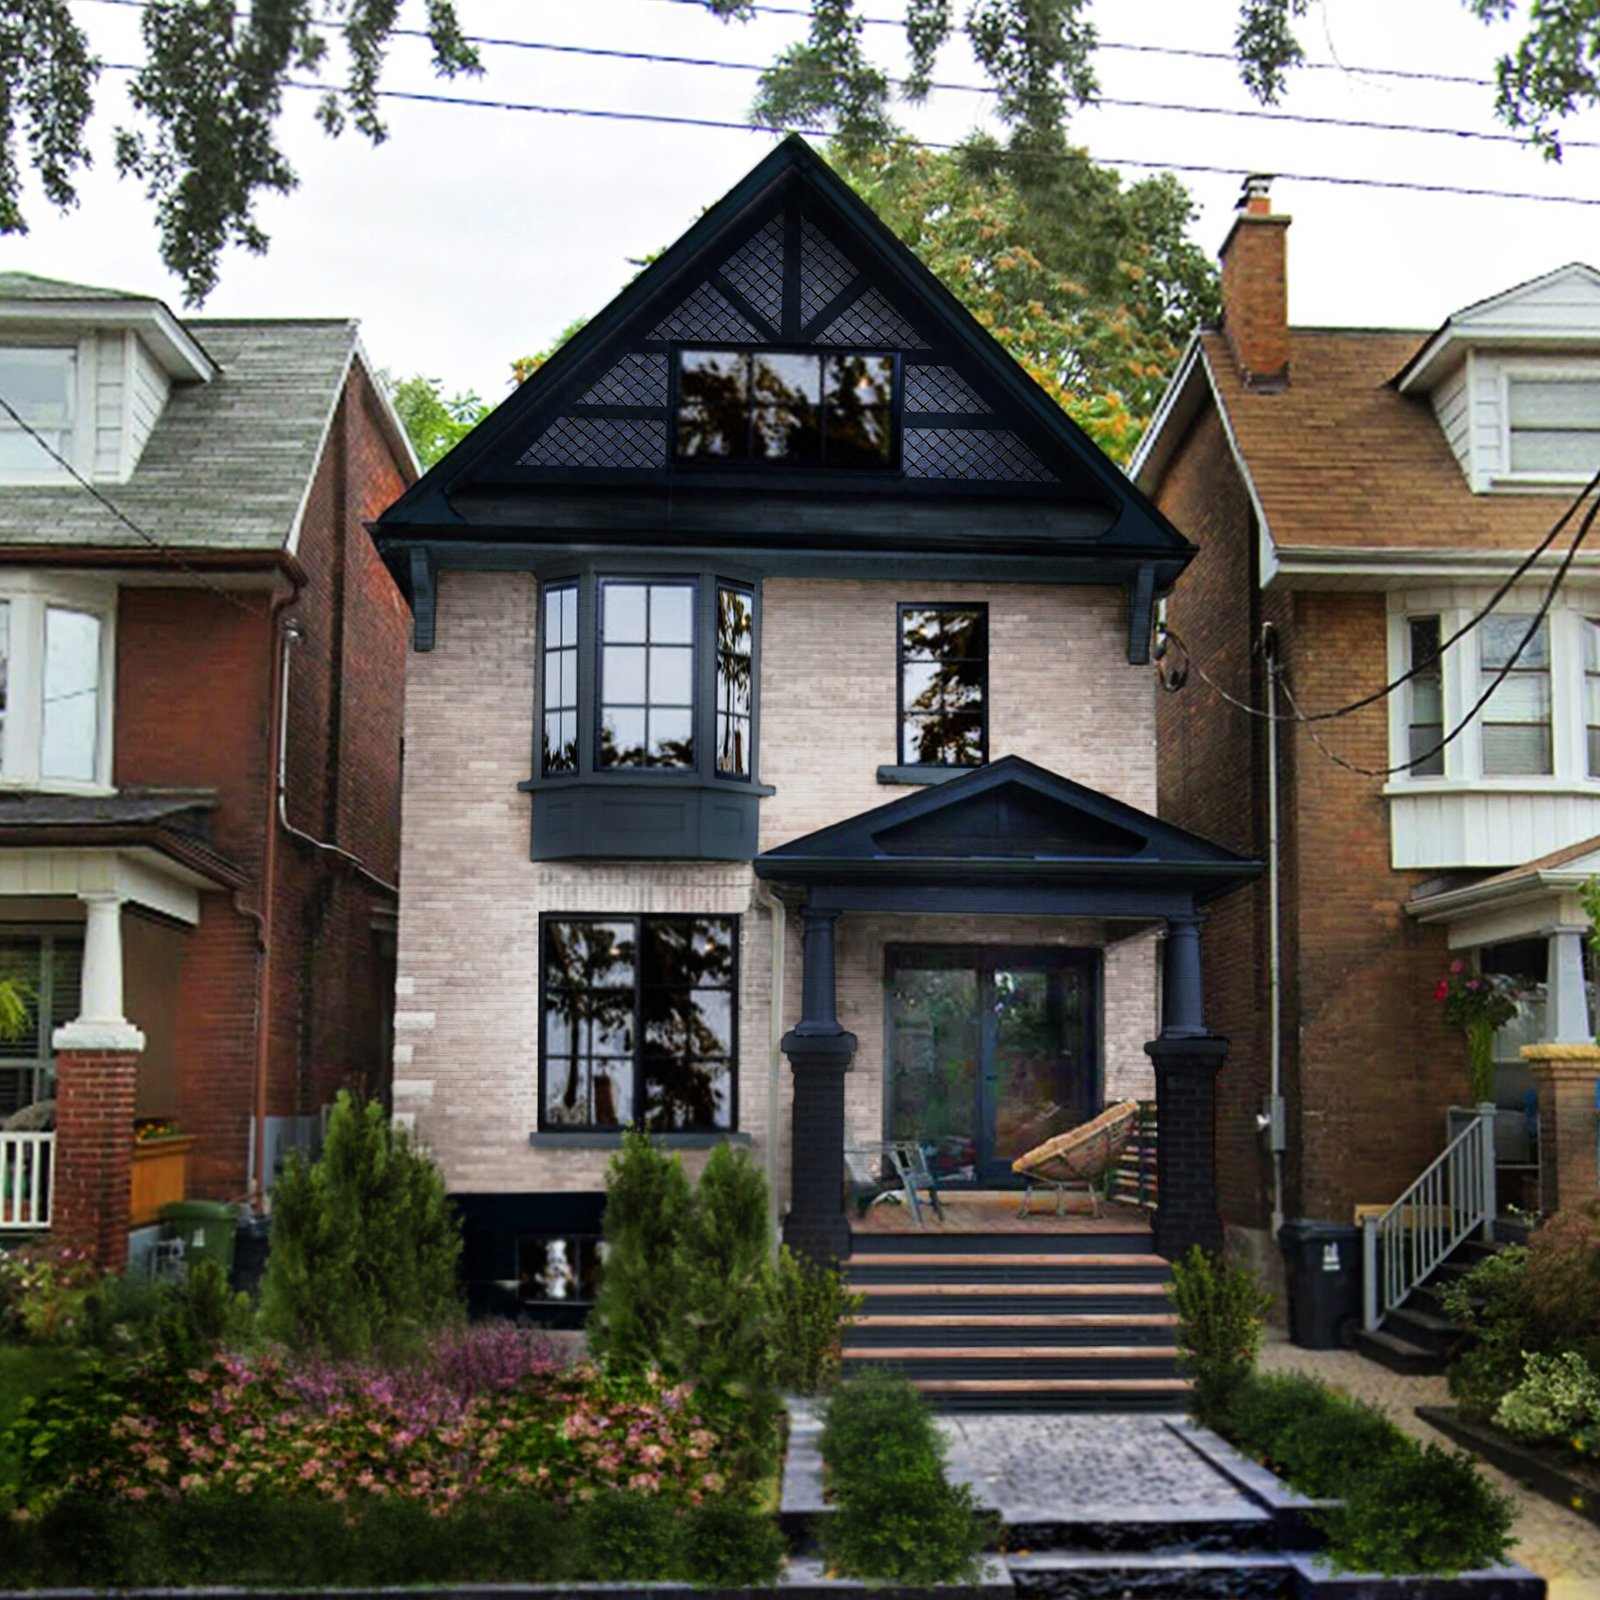 Exterior, Shingles Roof Material, House Building Type, Gable RoofLine, and Brick Siding Material The front facade is whitewashed pink brick with dark navy-grey trimwork.  Reimagined Edwardian by CAB Architects